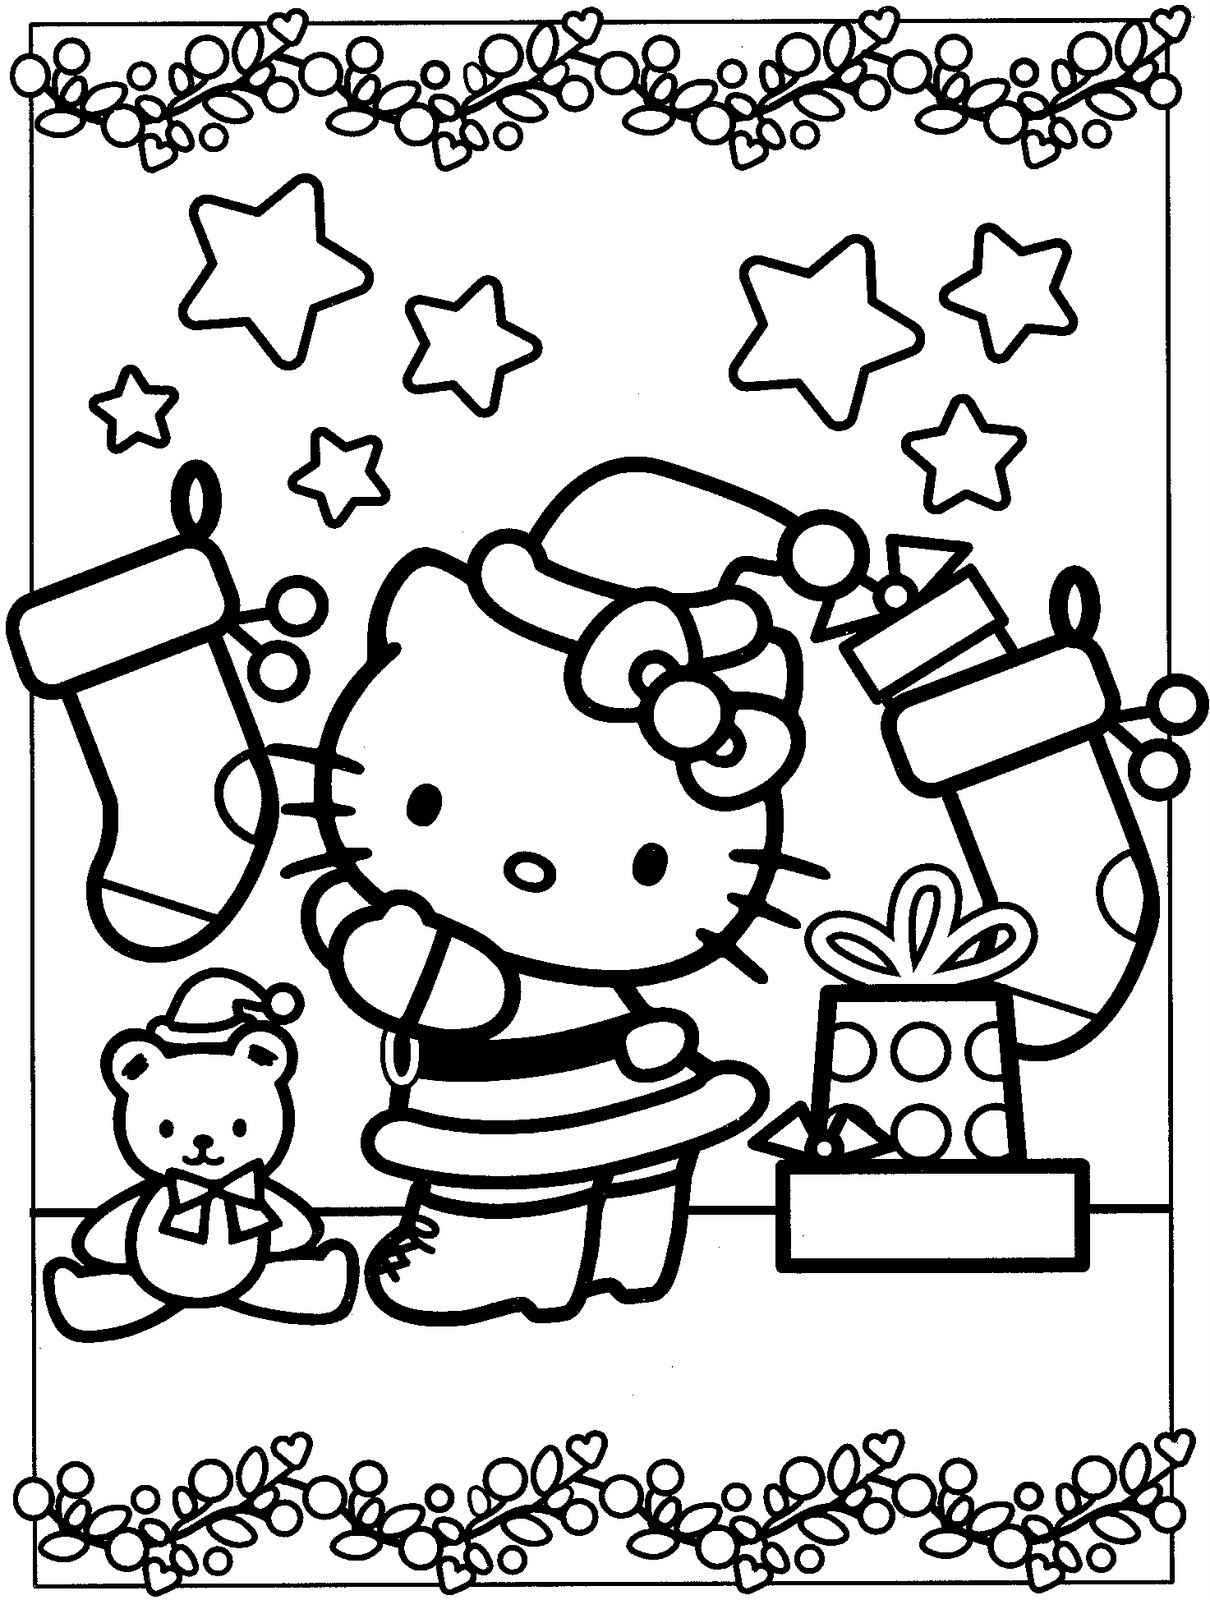 Coloring Pages Hello Kitty Coloring Pages Christmas hello kitty christmas coloring sheets eassume com eassume